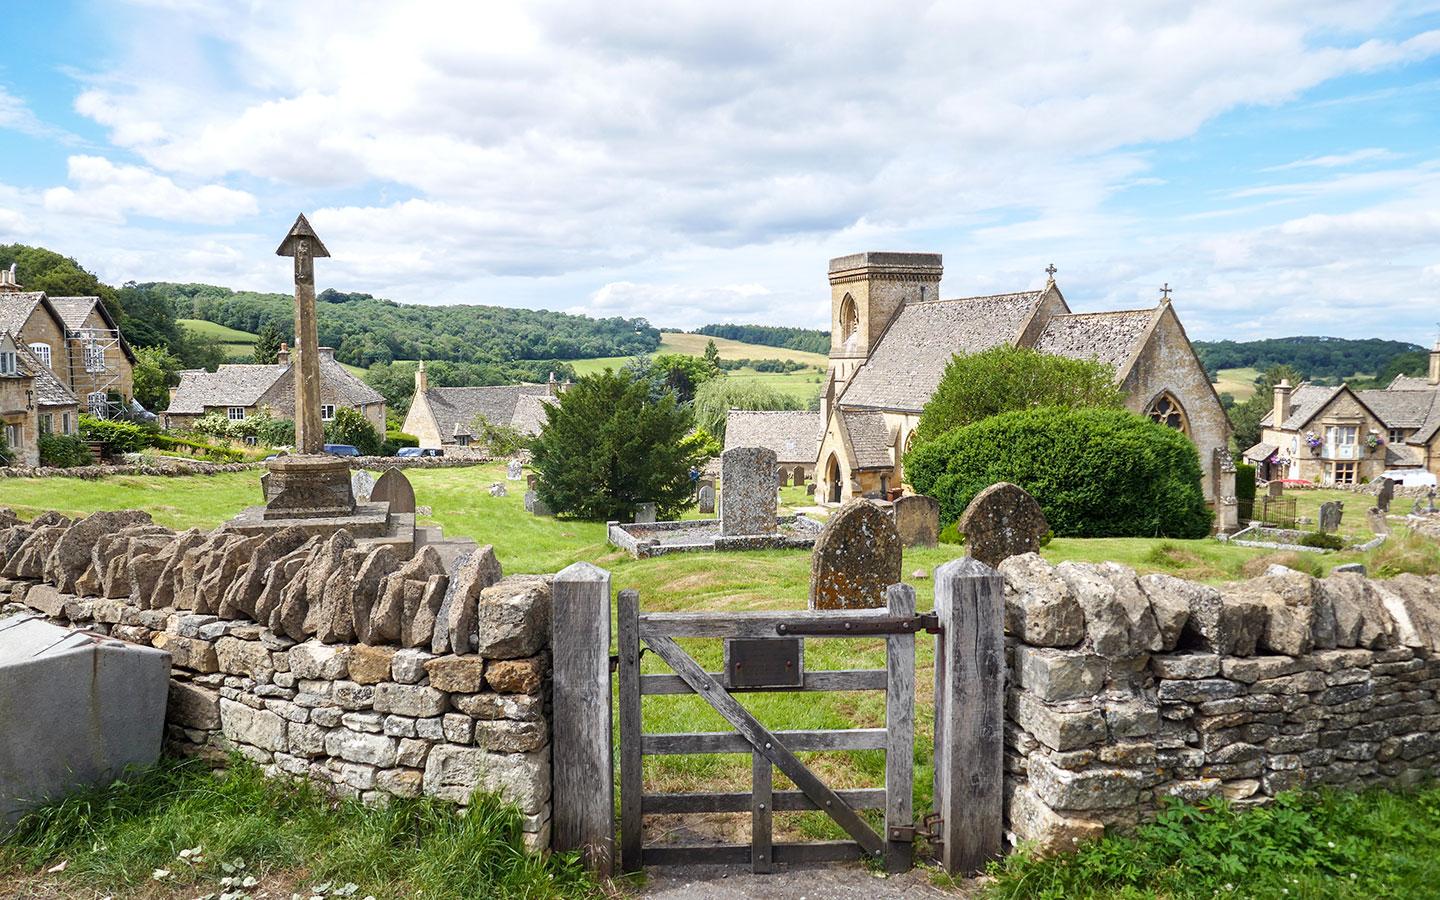 Snowshill in the Cotswolds, film location for Bridget Jones Diary